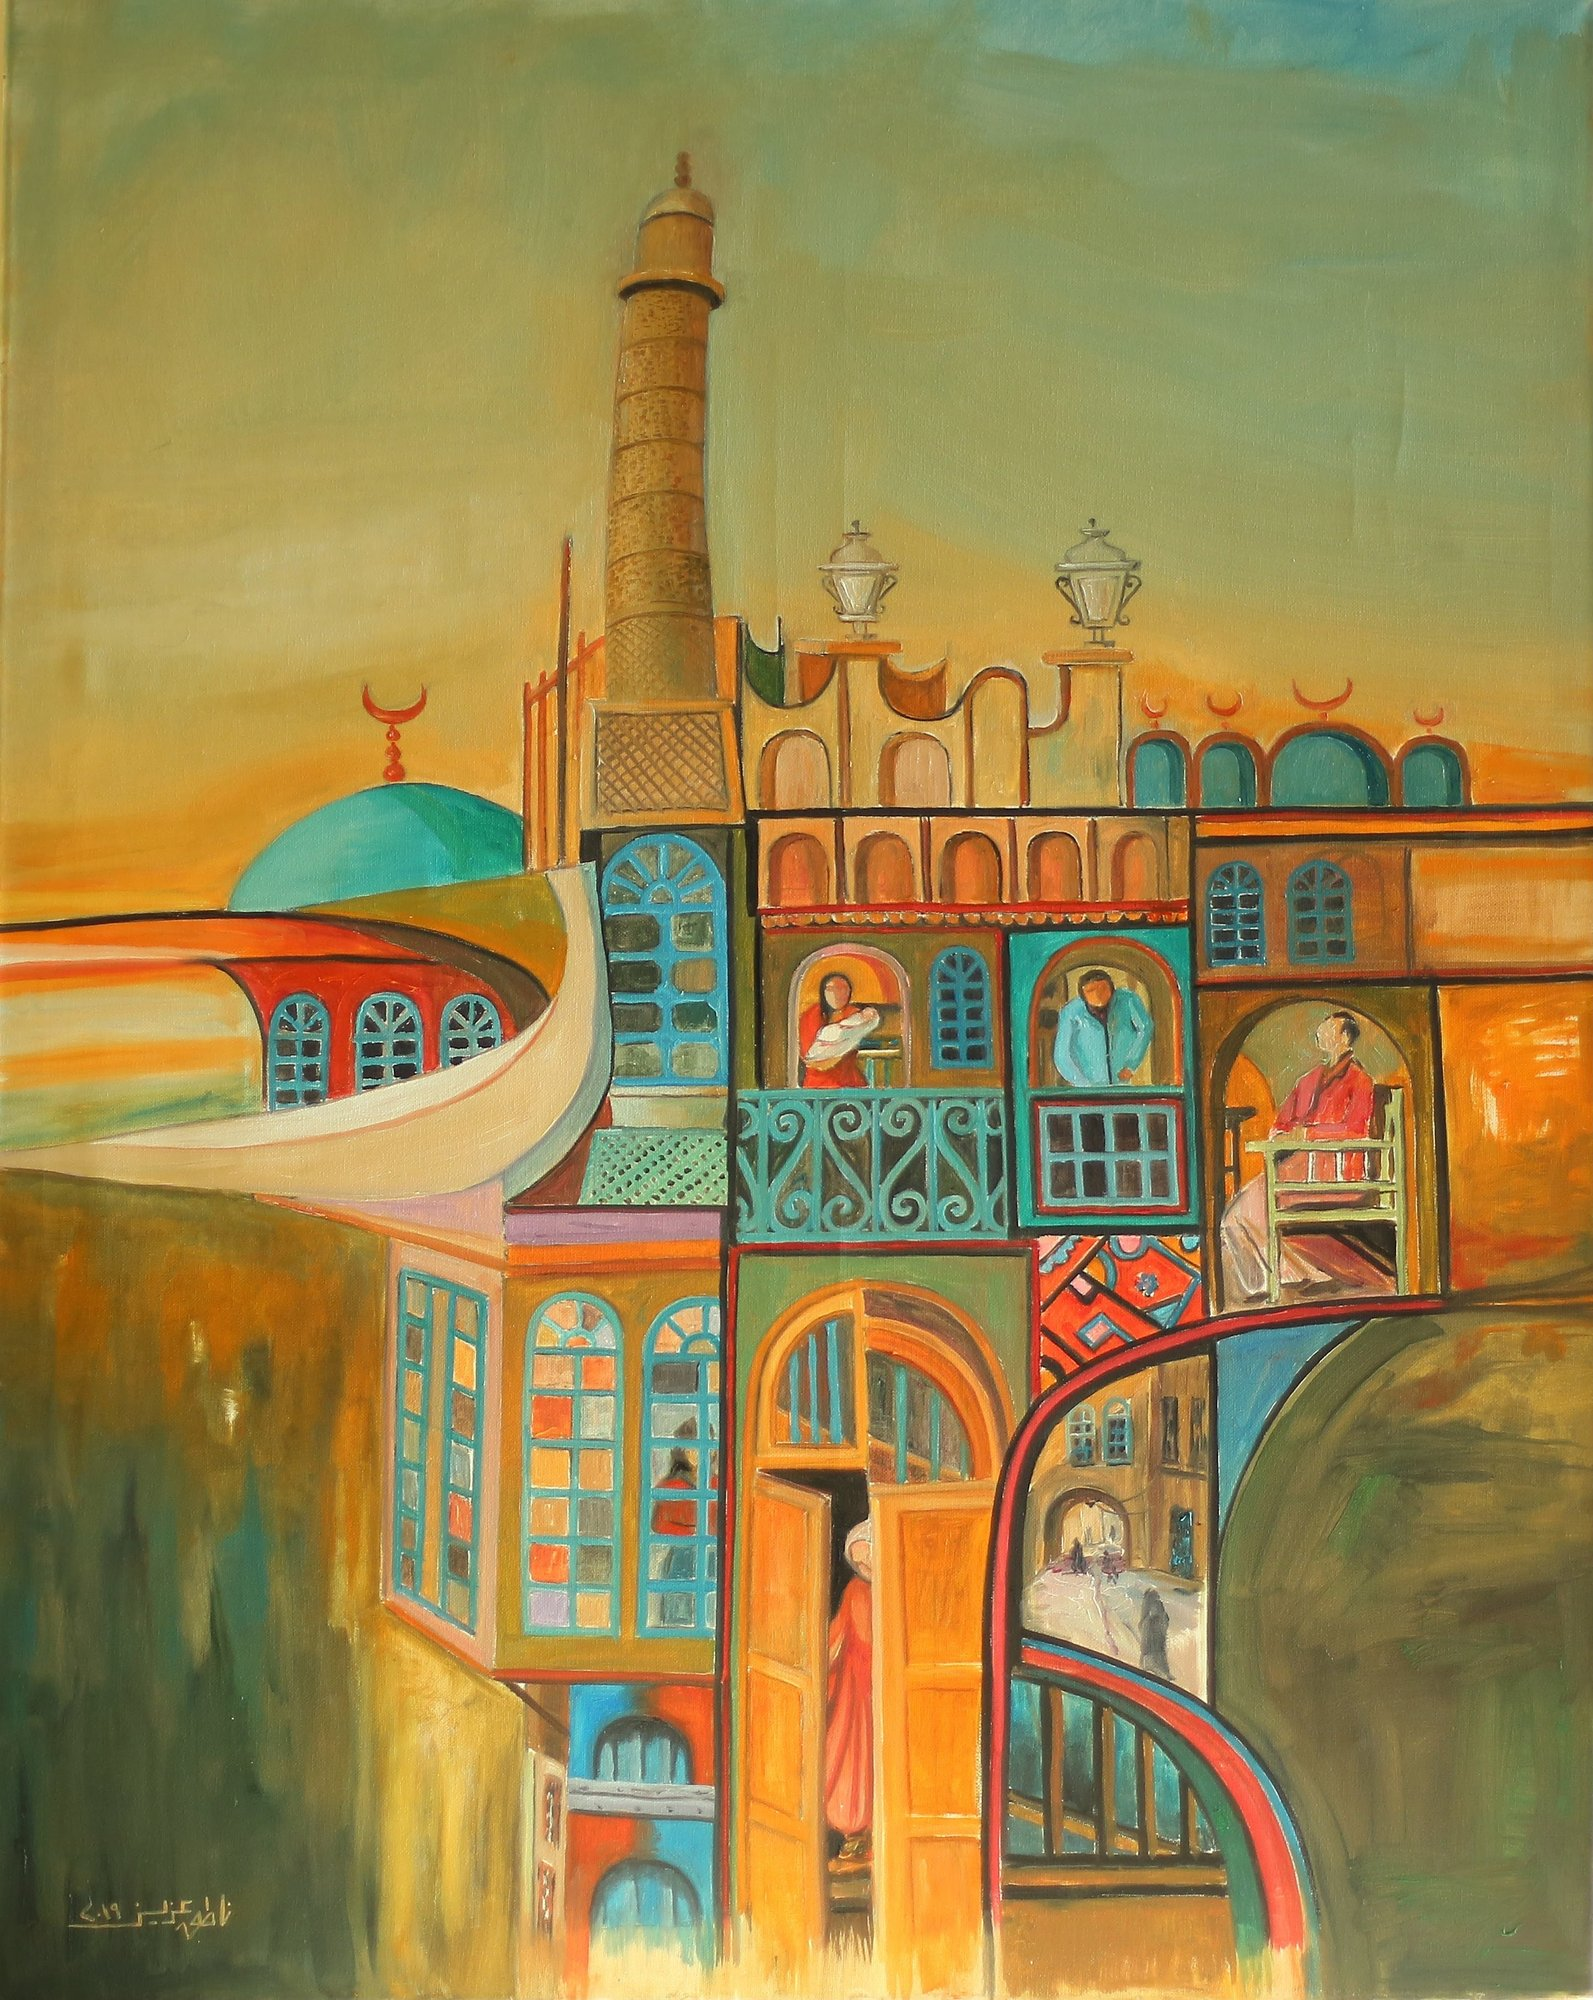 Mosul's Art & Soul comes to life